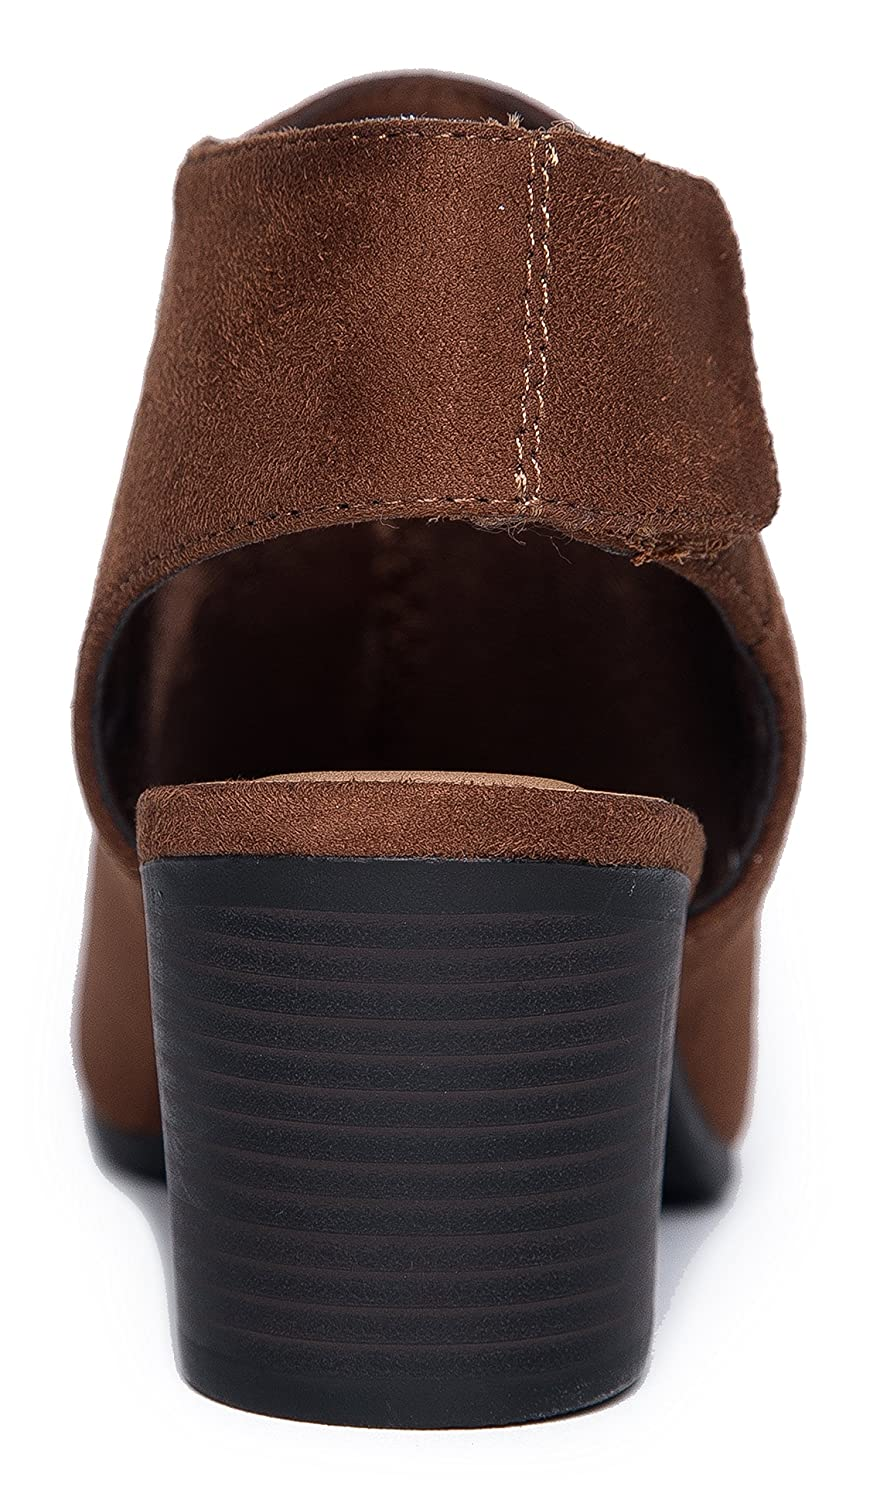 J Adams Harlyn Ankle Bootie Adjustable Band Peep Toe Low Stacked Heel Boots